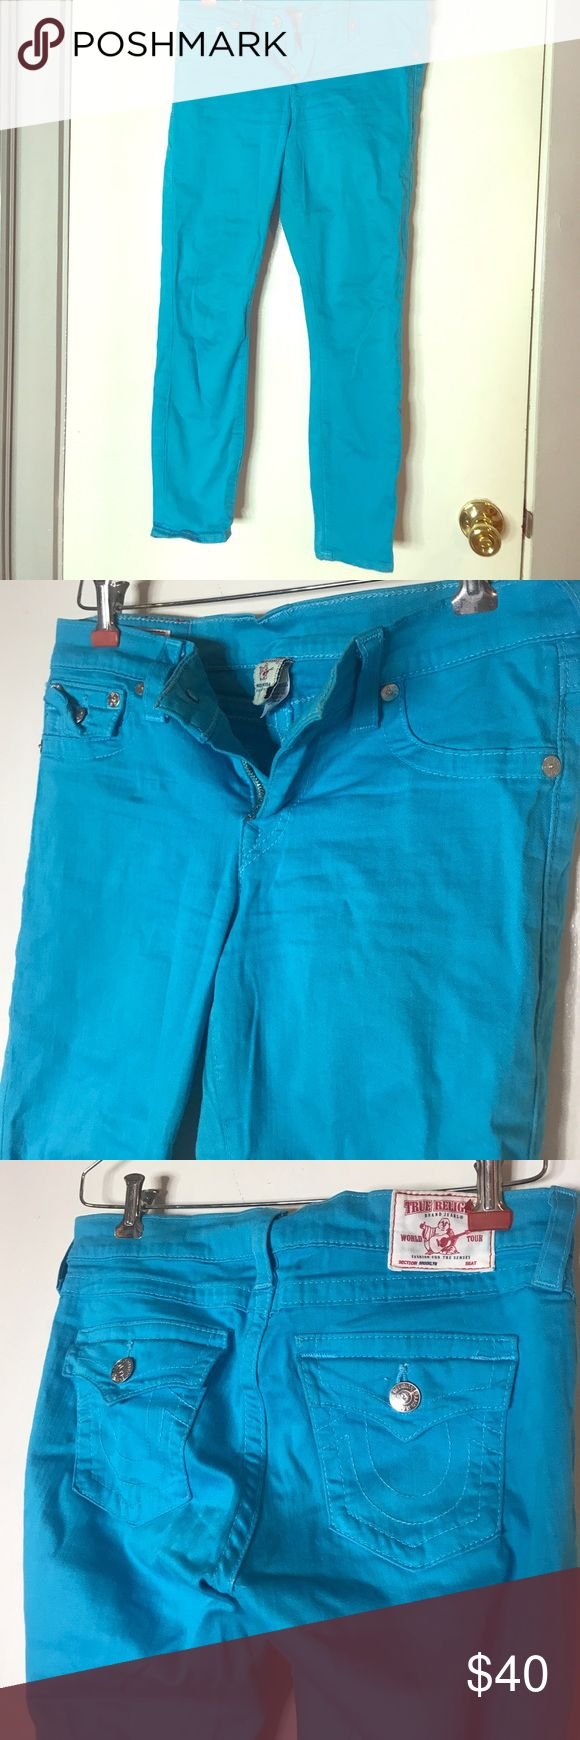 Teal true religion ankle jeans Turquoise ankle skinny jeans with silver buttons, false front pockets, real button back pockets. Sz 28 cotton elastane blend True Religion Jeans Ankle & Cropped